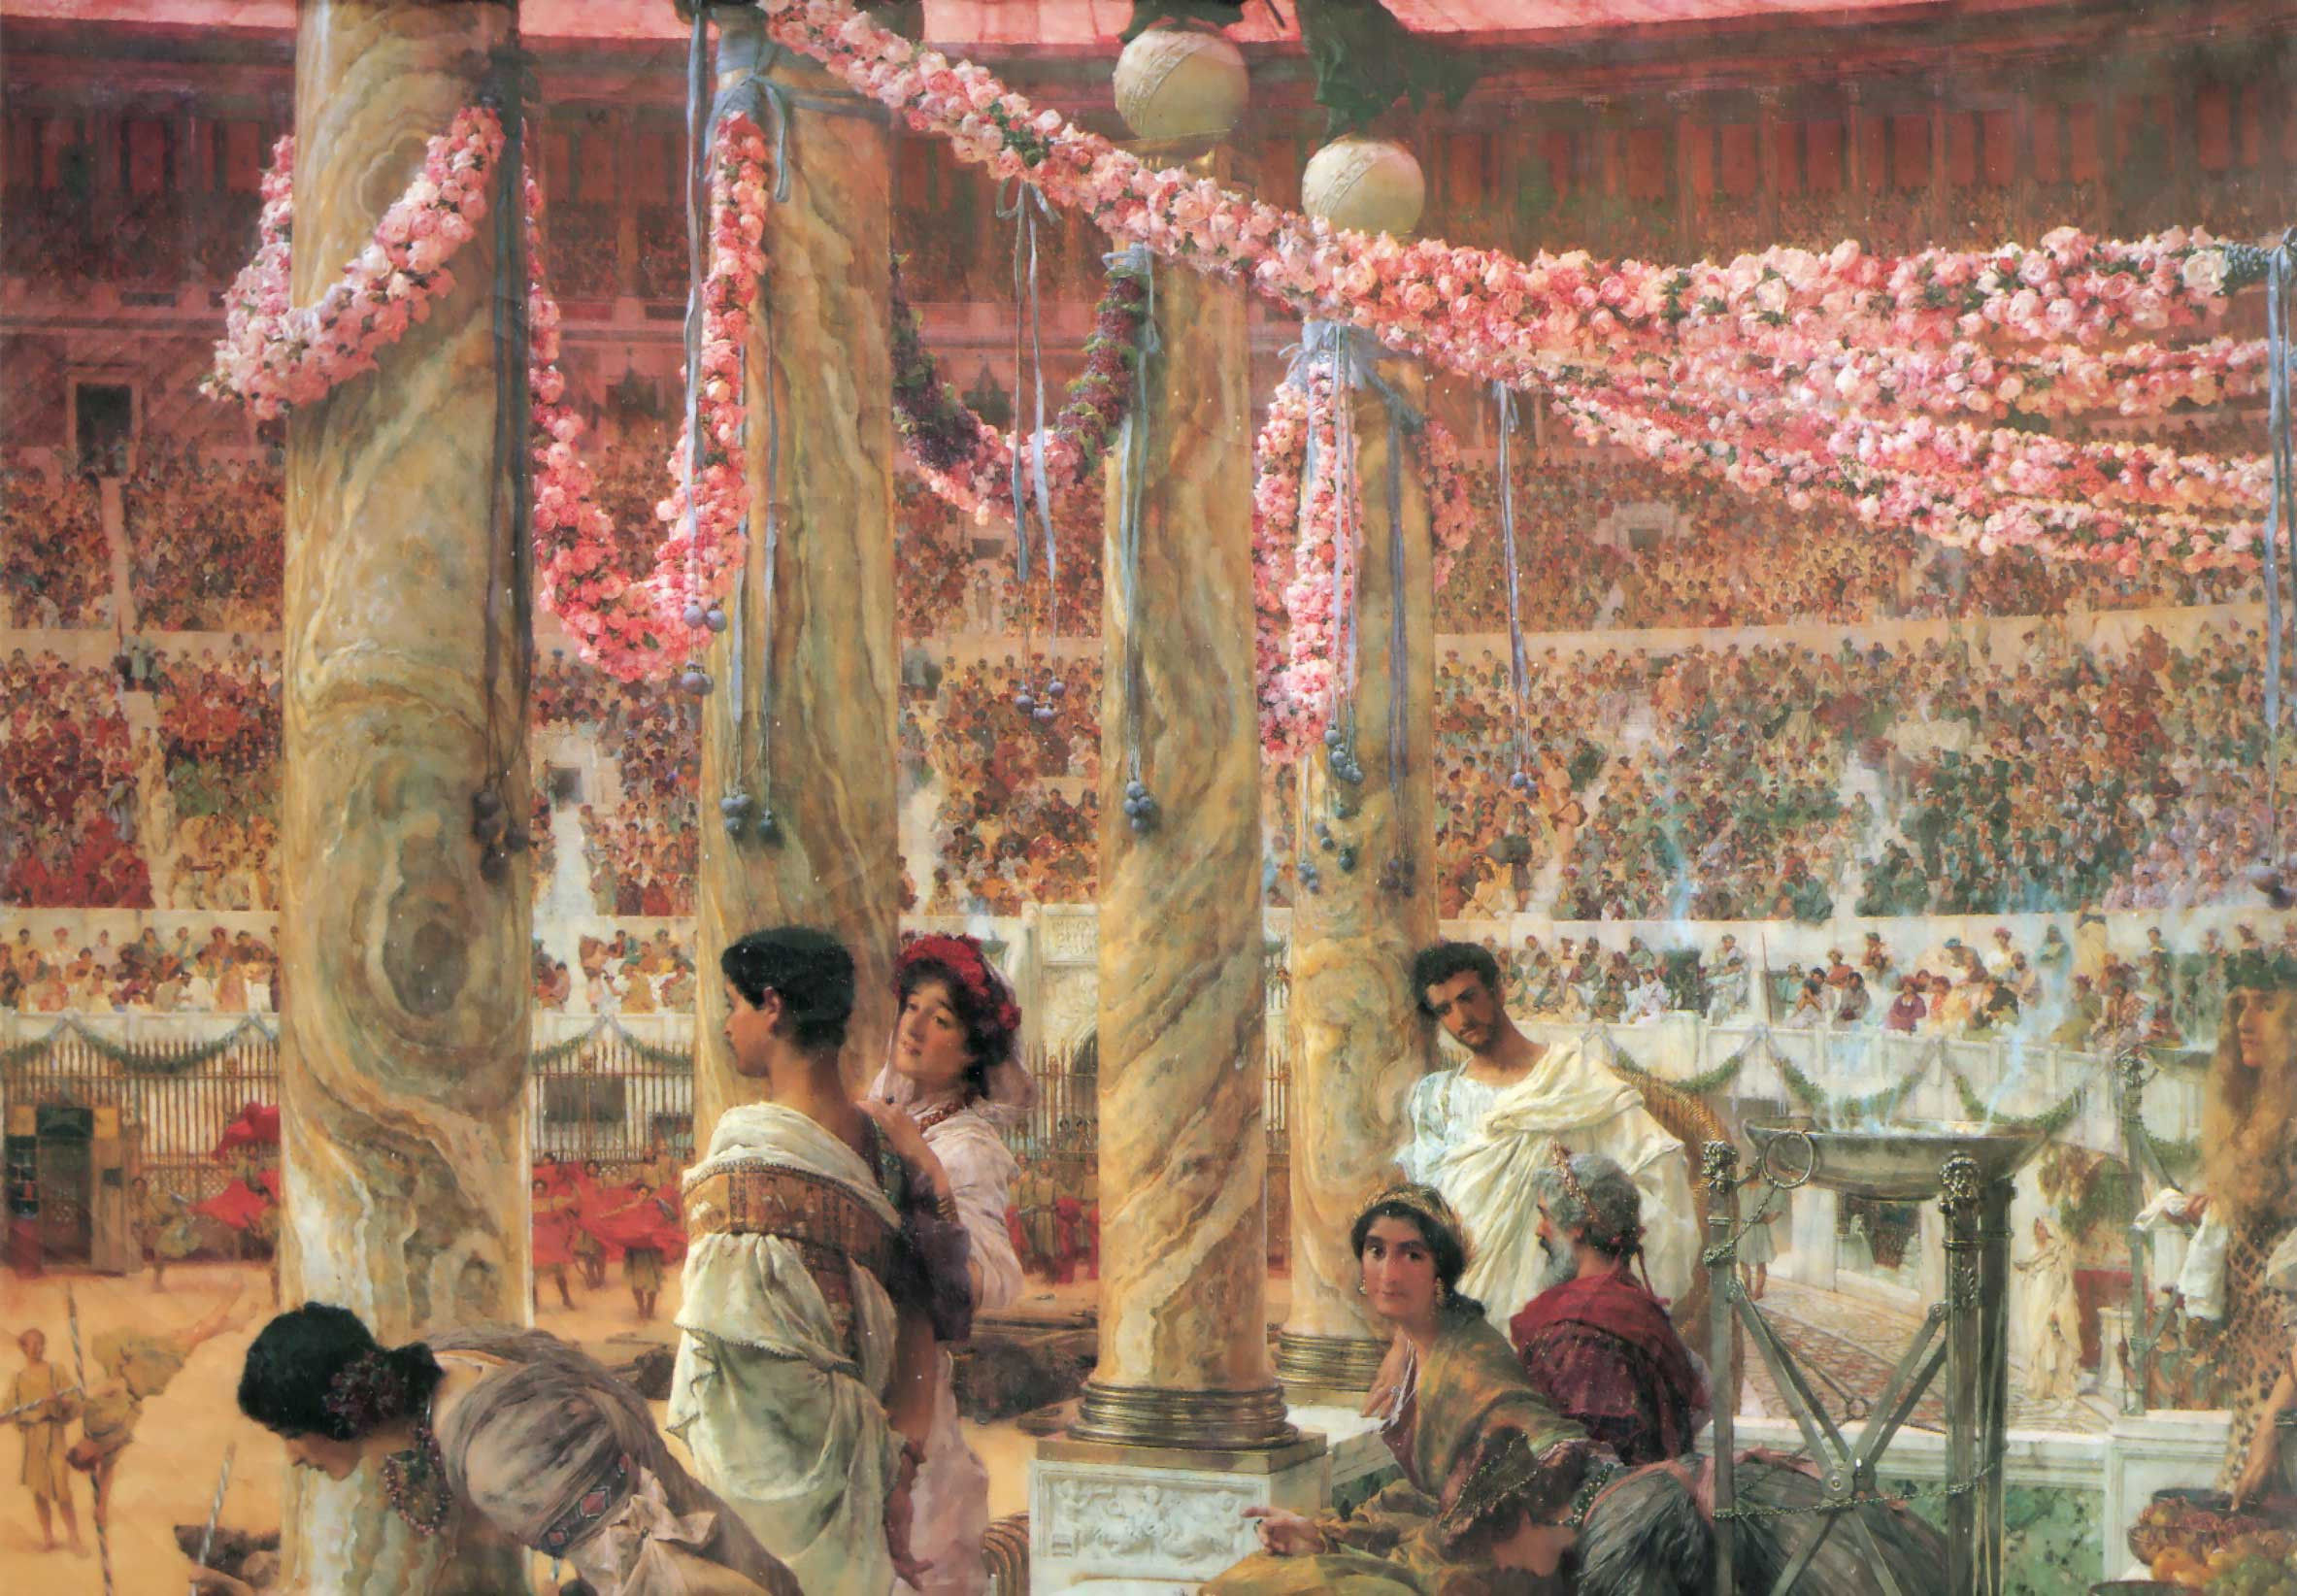 Painting of Alma Tadema 'Caracalla and Geta, Bearfight in the Colloseum AD 203', also available as an origimal engraving at Gallerease